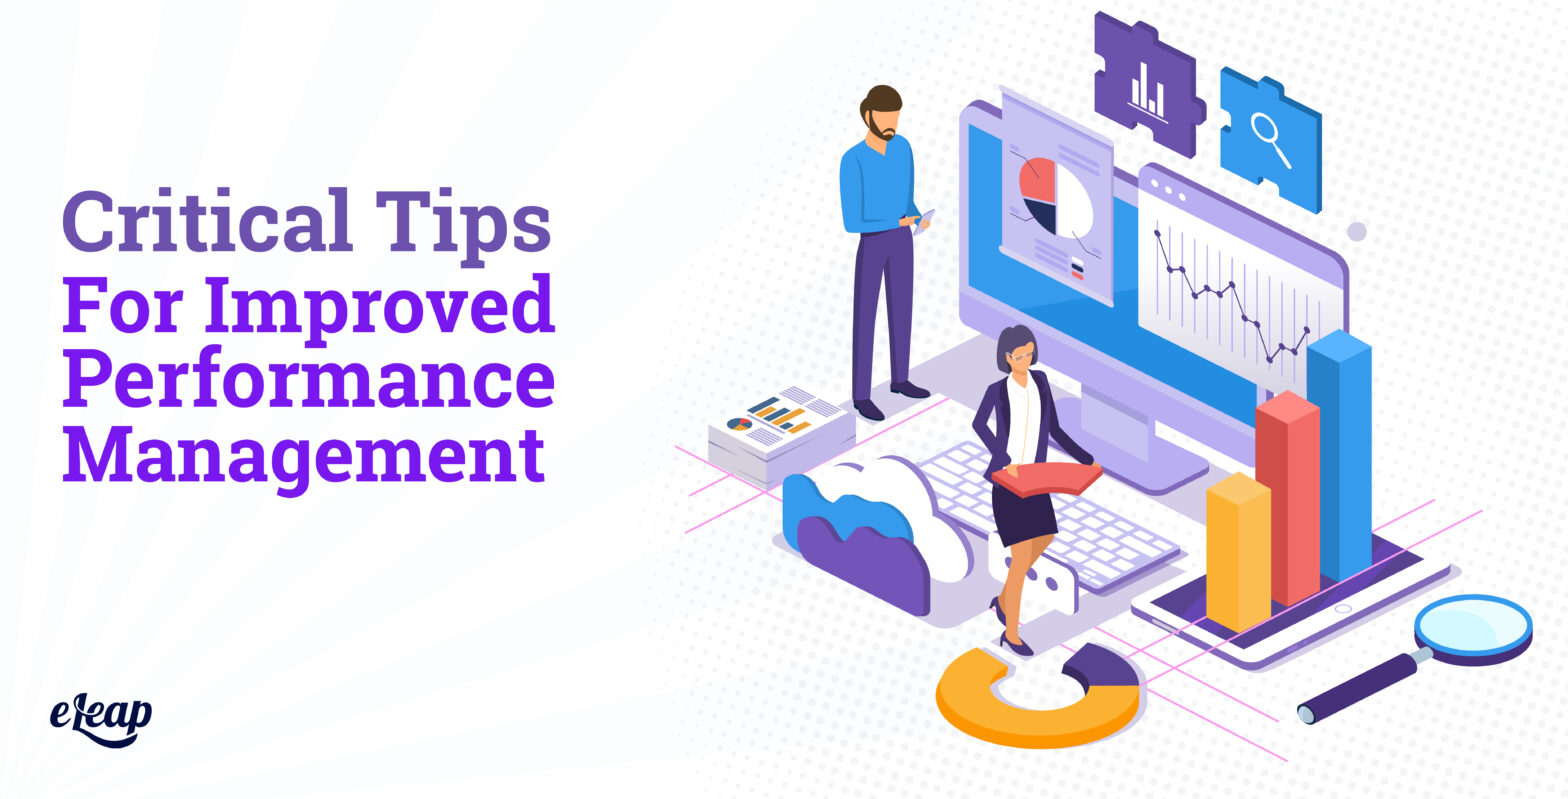 Critical Tips for Improved Performance Management